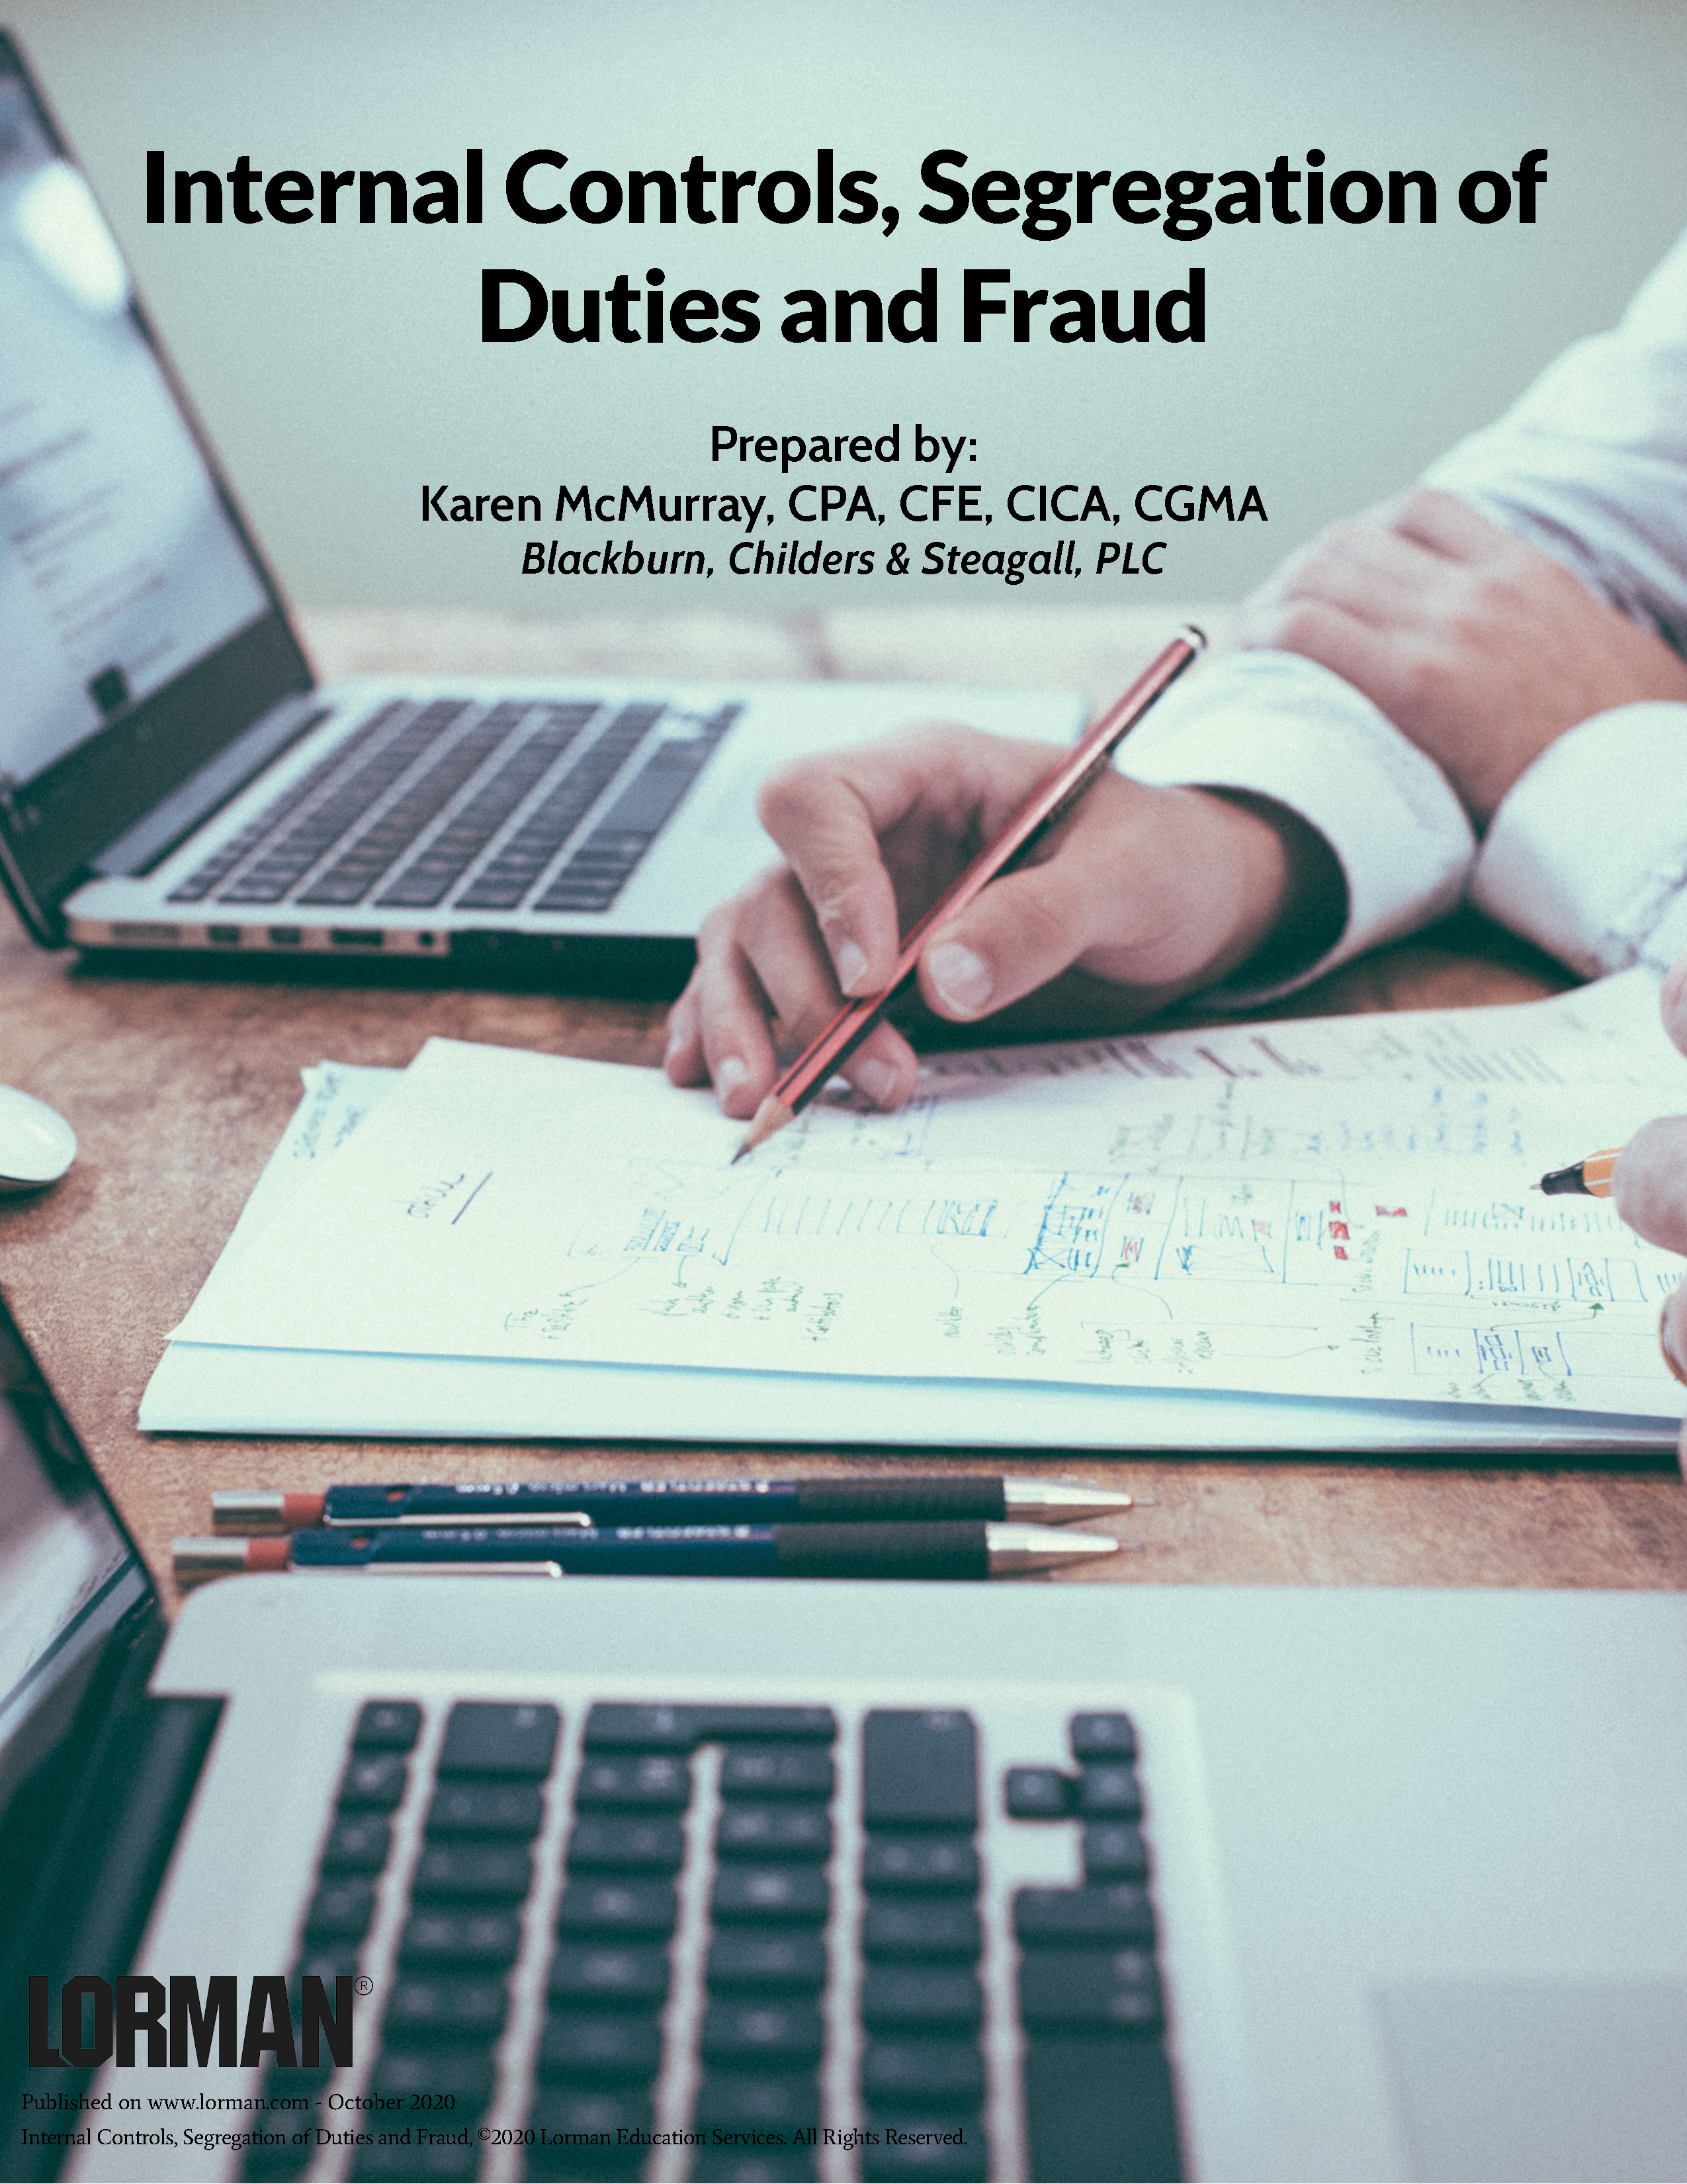 Internal Controls, Segregation of Duties and Fraud